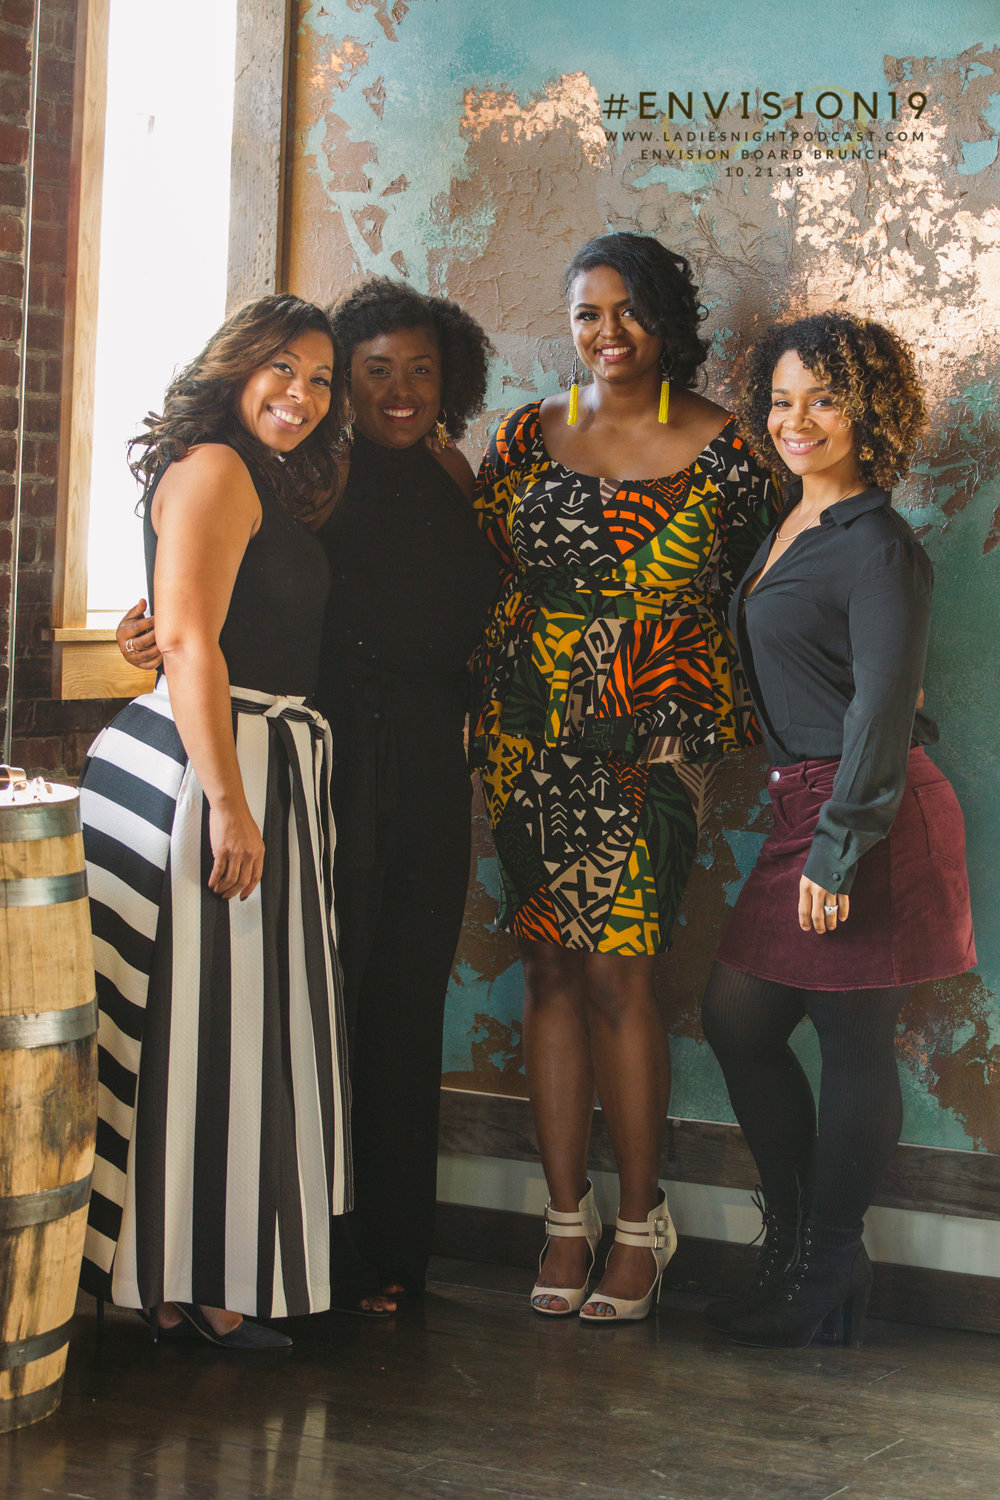 LaChelle T. Parker, Hazel Owens, Shavonne Holton,and Eva Guzman during the EnVision Board Brunch 10.21.18.